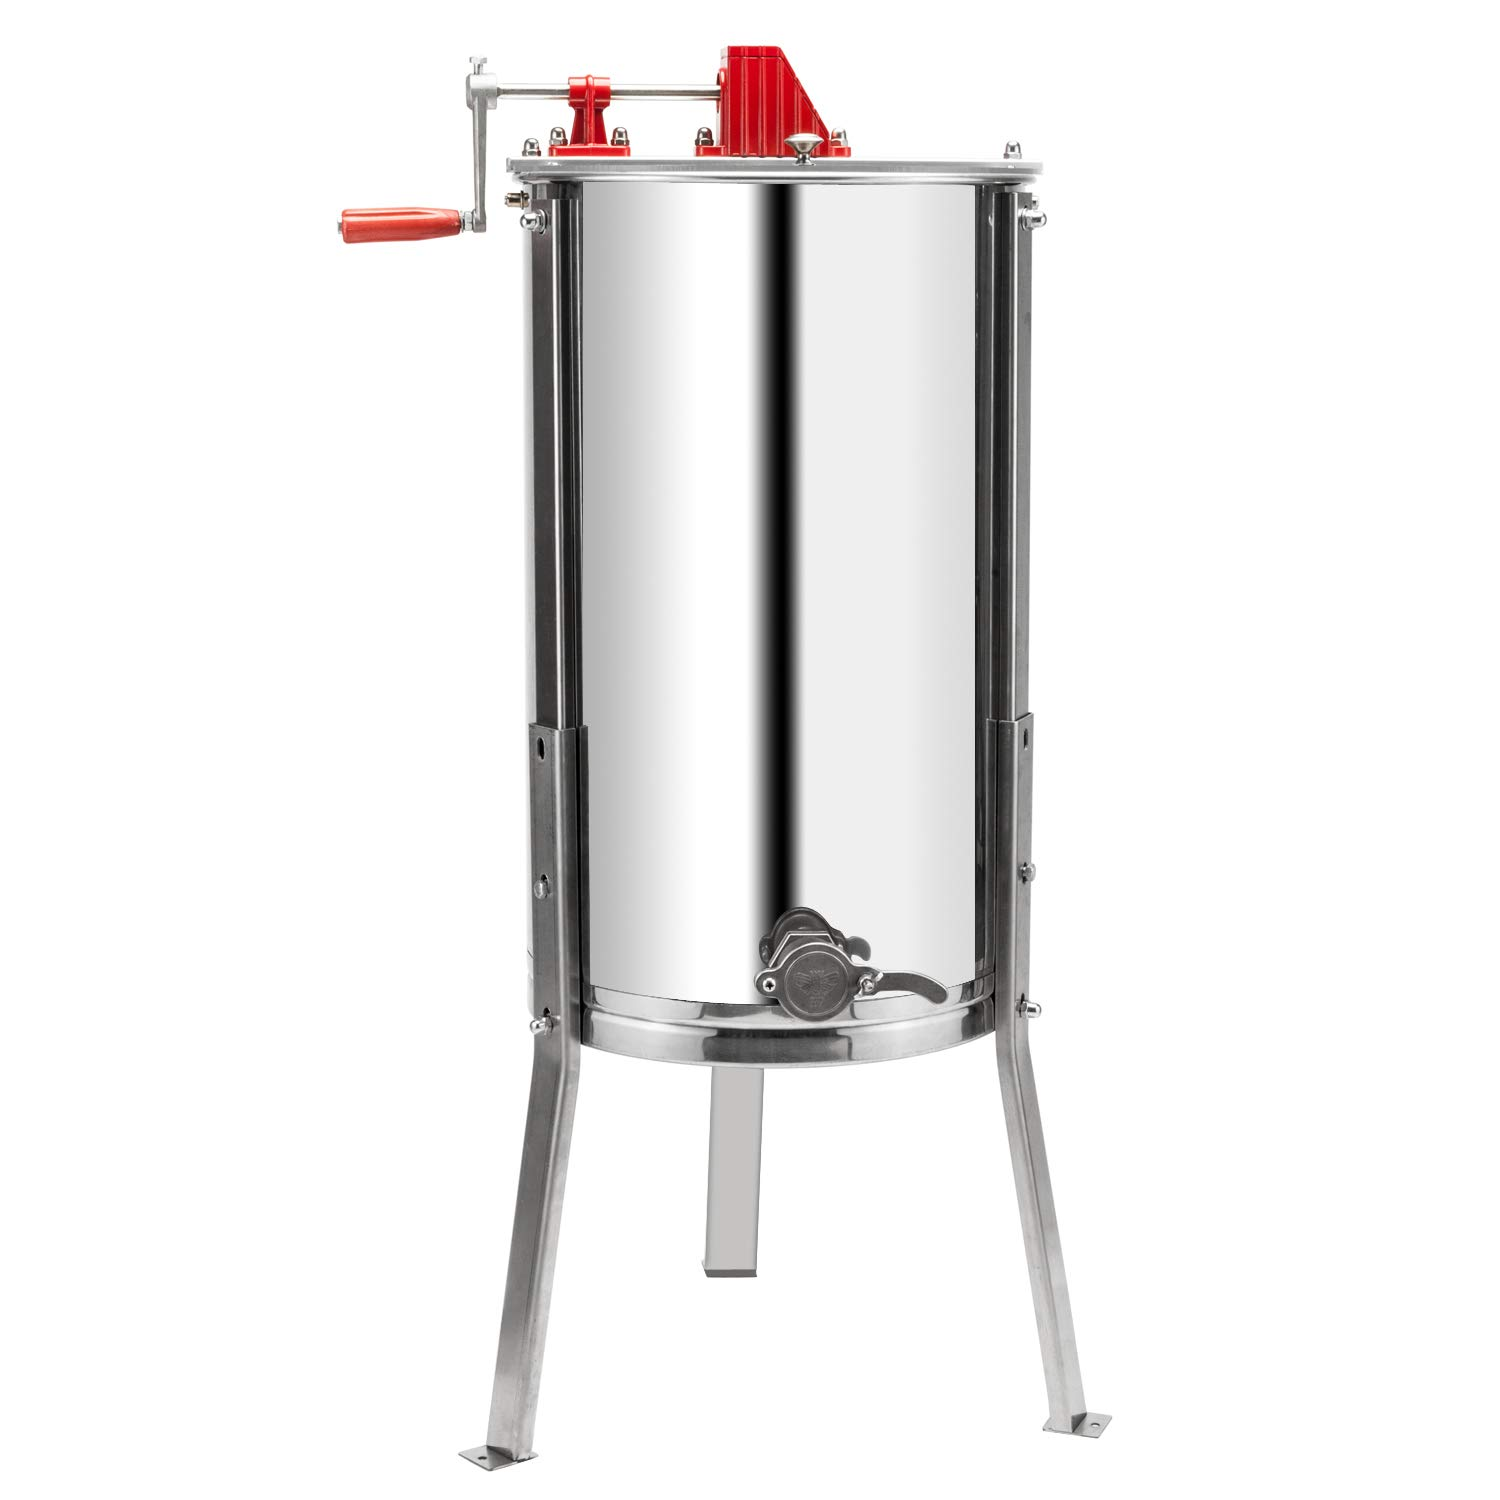 VINGLI Upgraded 2 Frame Honey Extractor Separator,Food Grade Stainless Steel Honeycomb Spinner Drum Manual Crank With Adjustable Height Stands,Beekeeping Pro Extraction Apiary Centrifuge Equipment by VINGLI